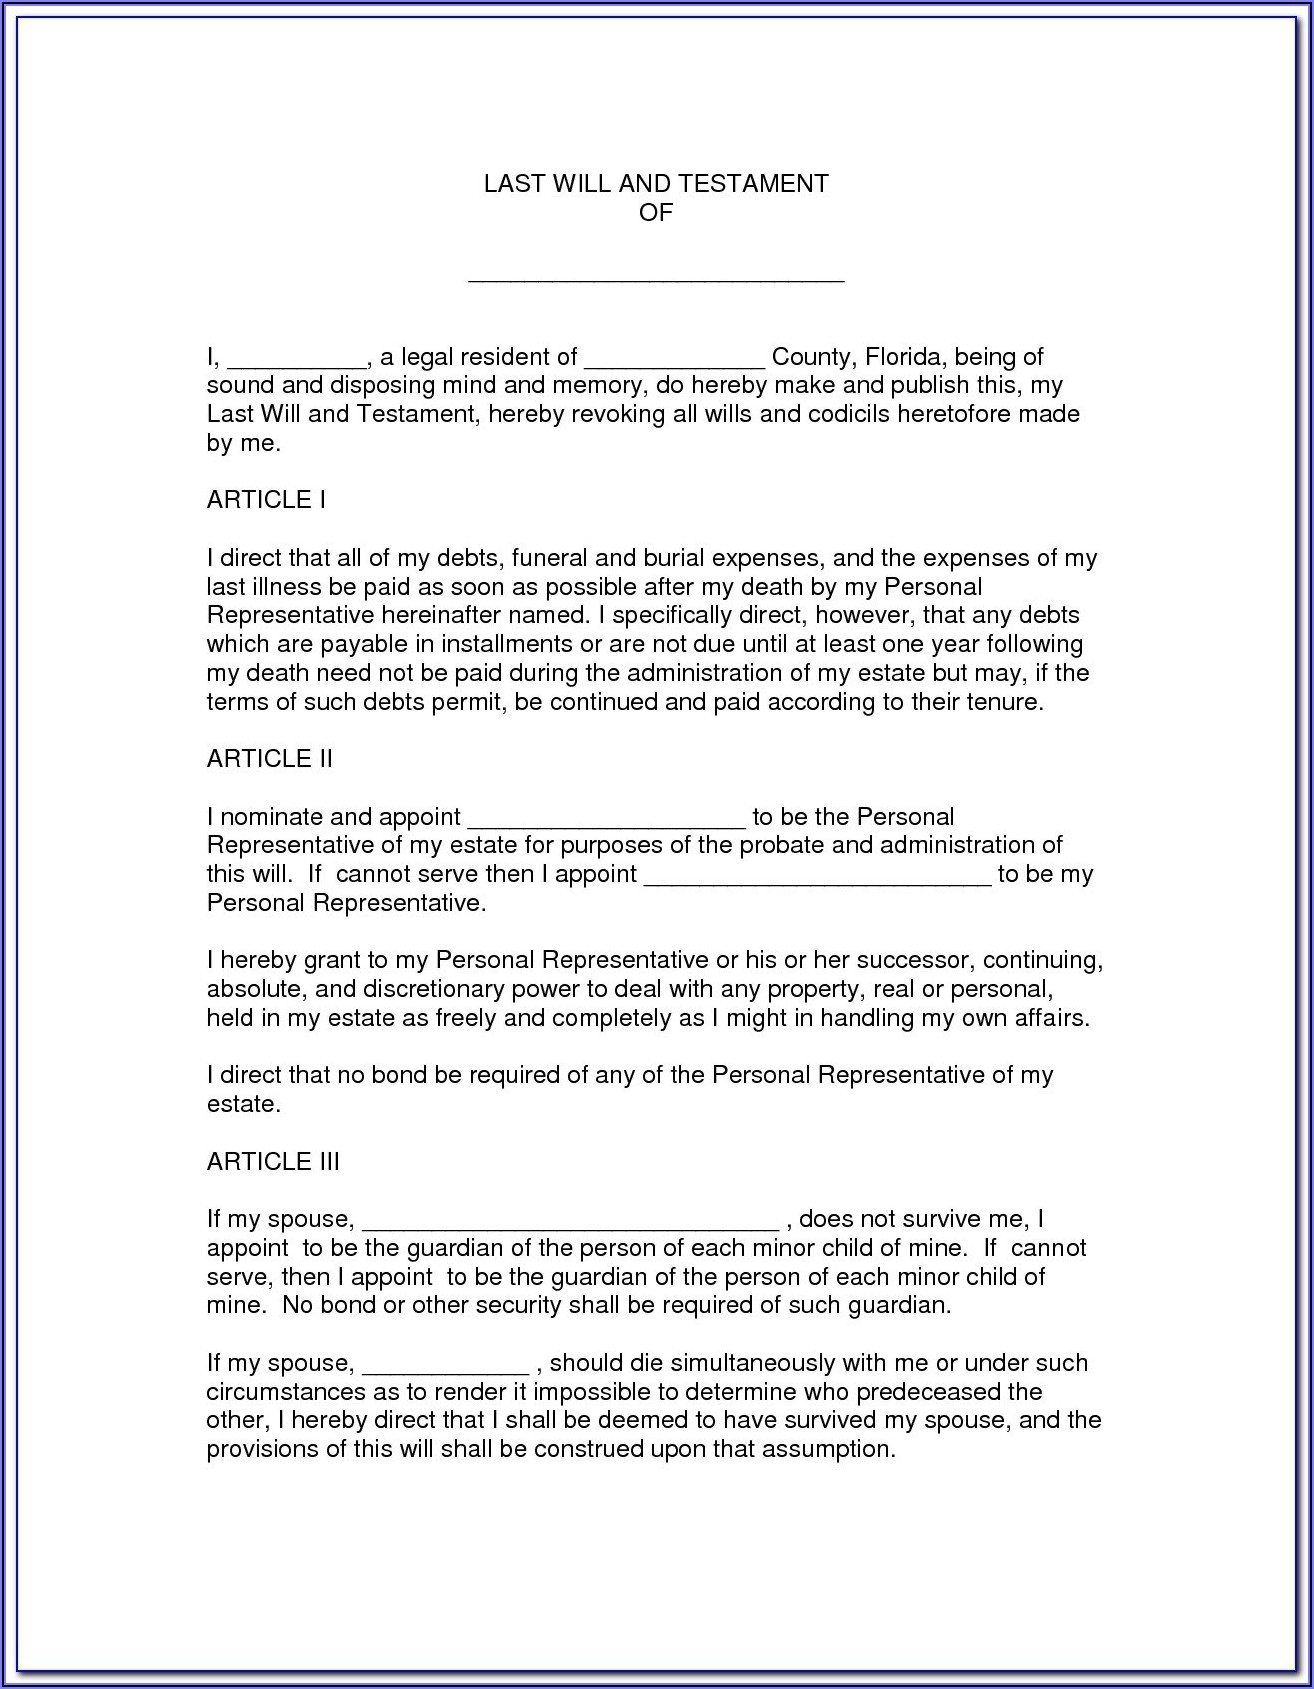 Florida Bar Last Will And Testament Form